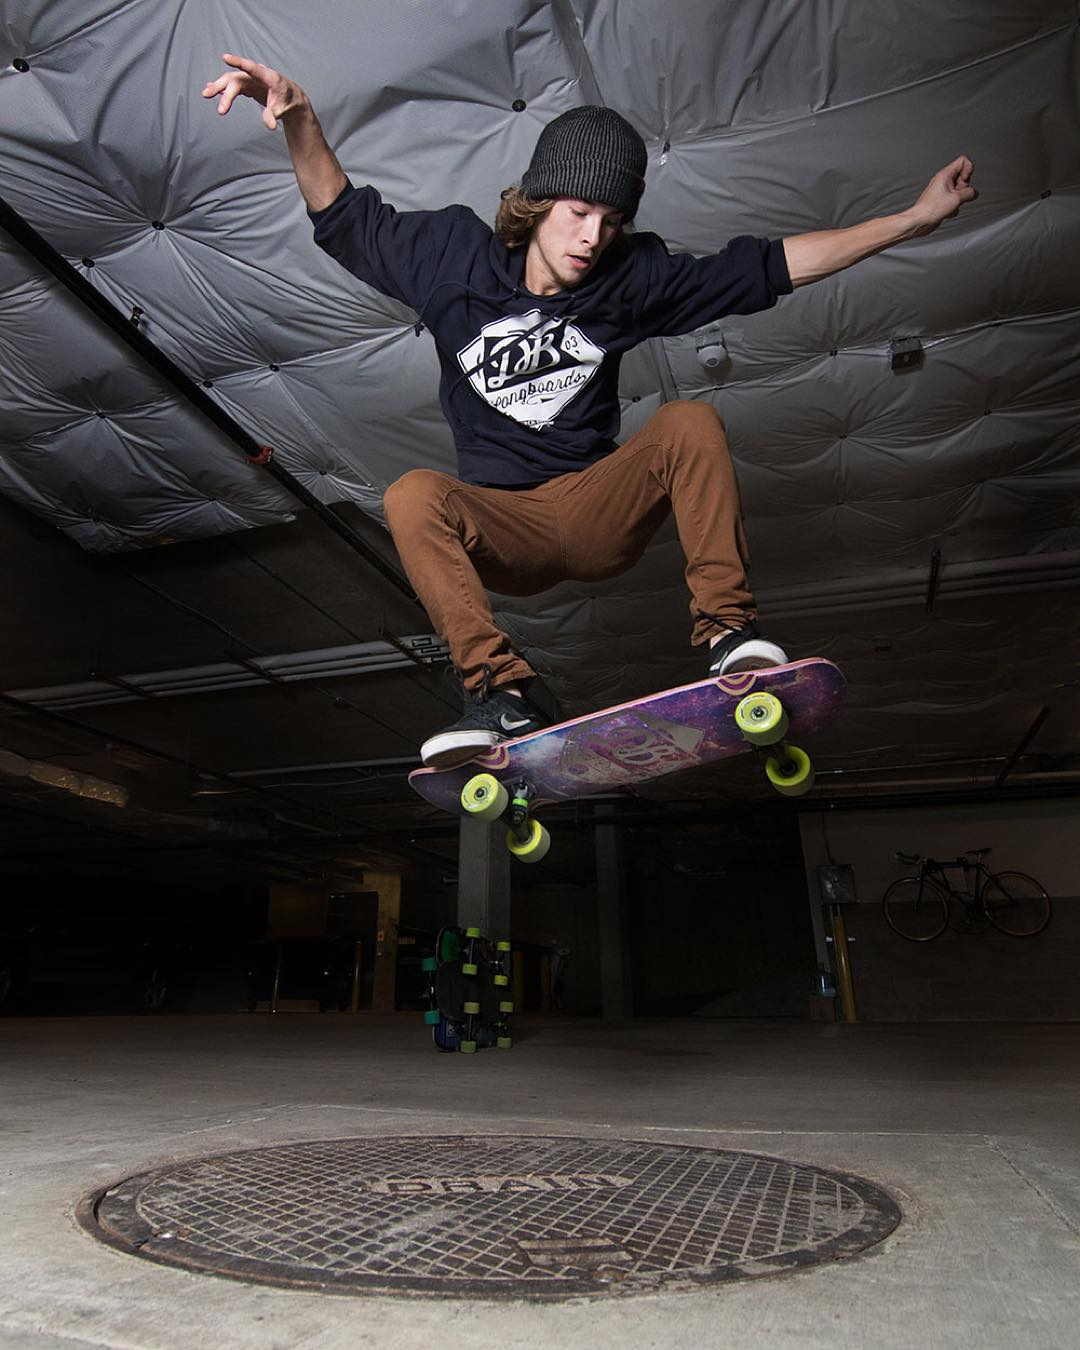 Parking garage session with @devdot23 on the Space Mini Cruiser!